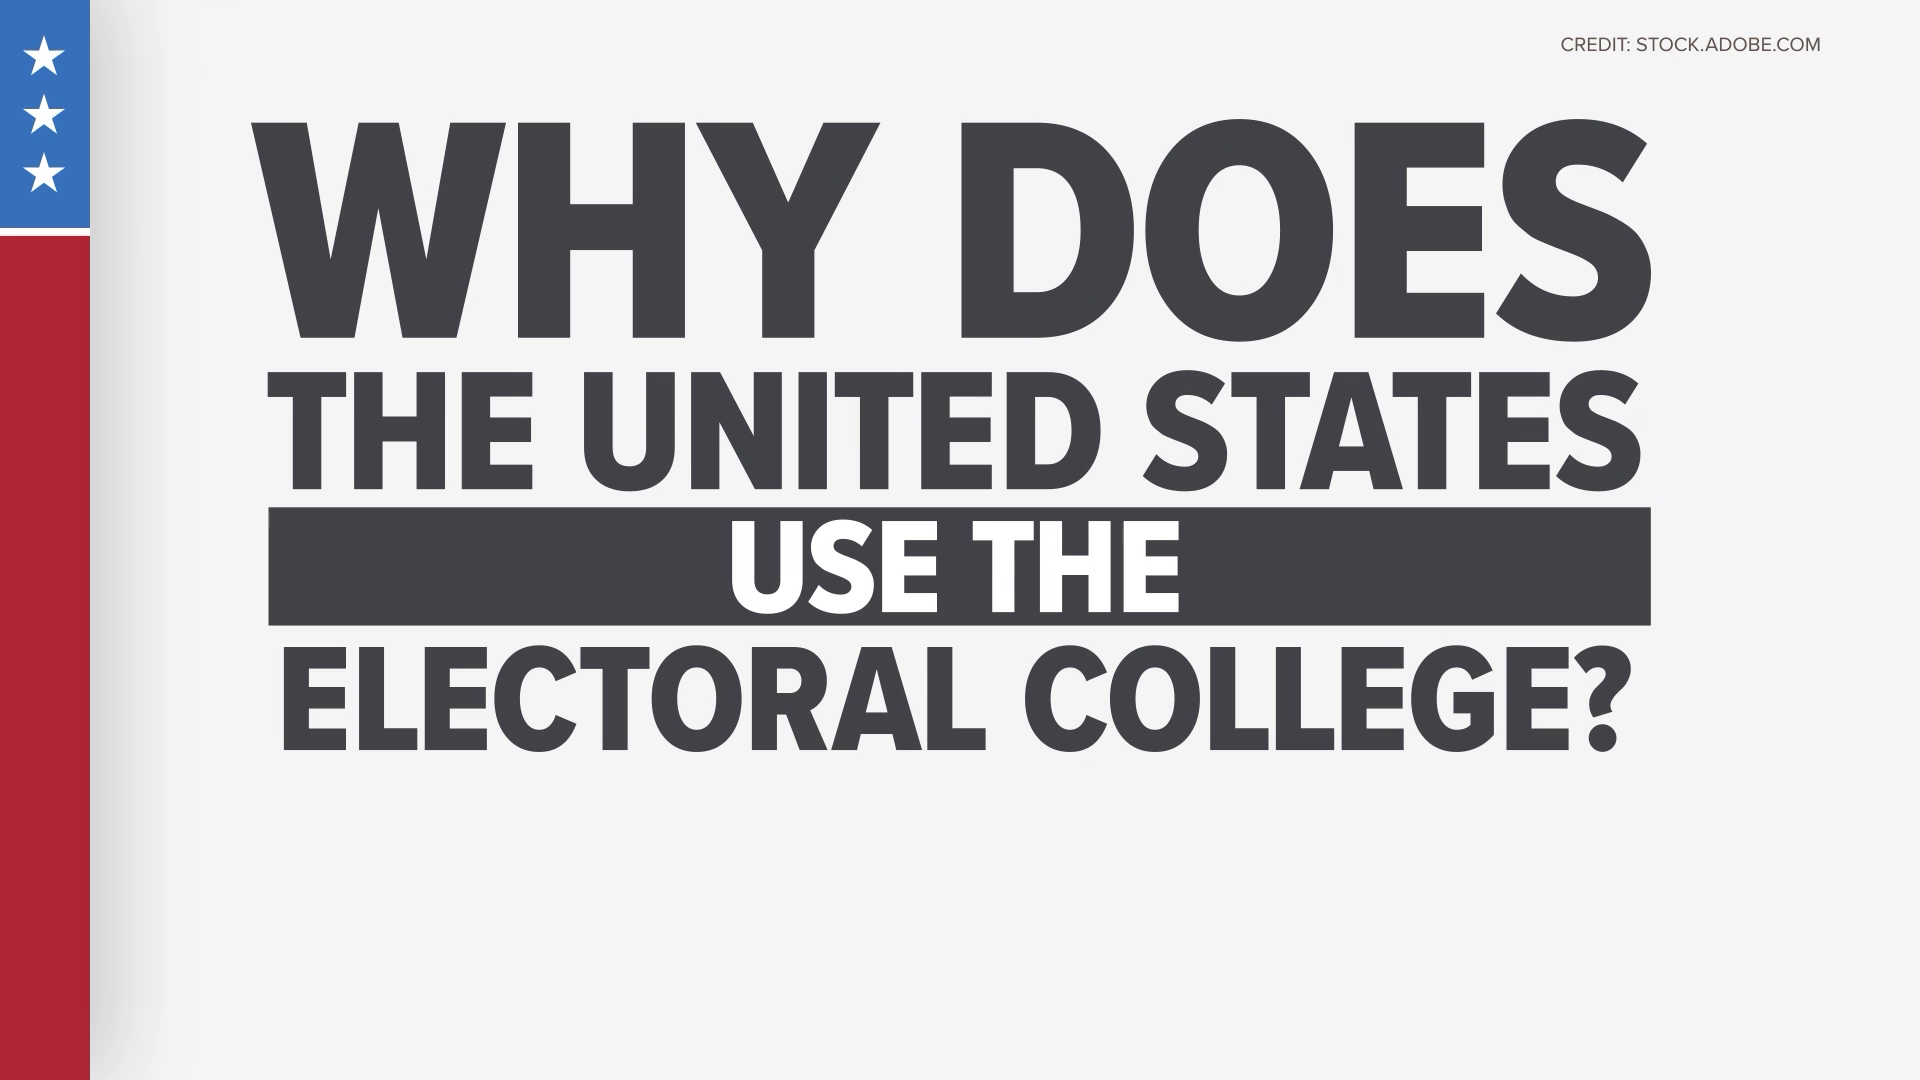 Trump is waiting for electoral college for electoral victory